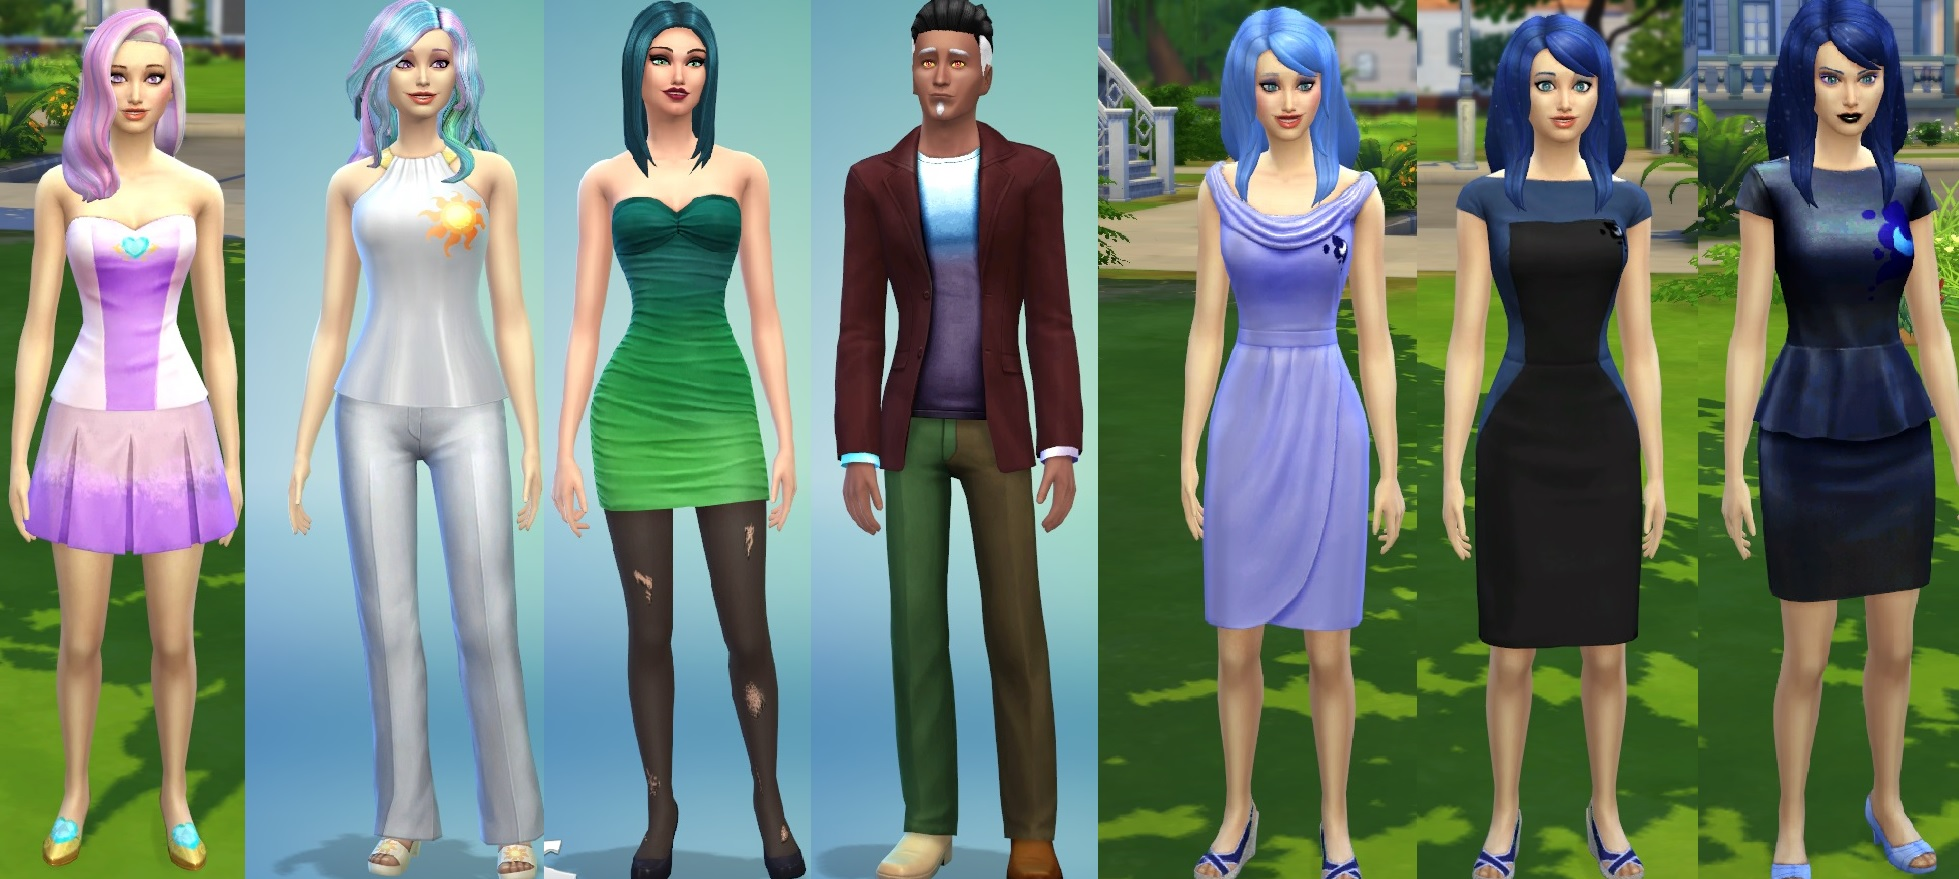 mod the sims princesses and villains of mlp